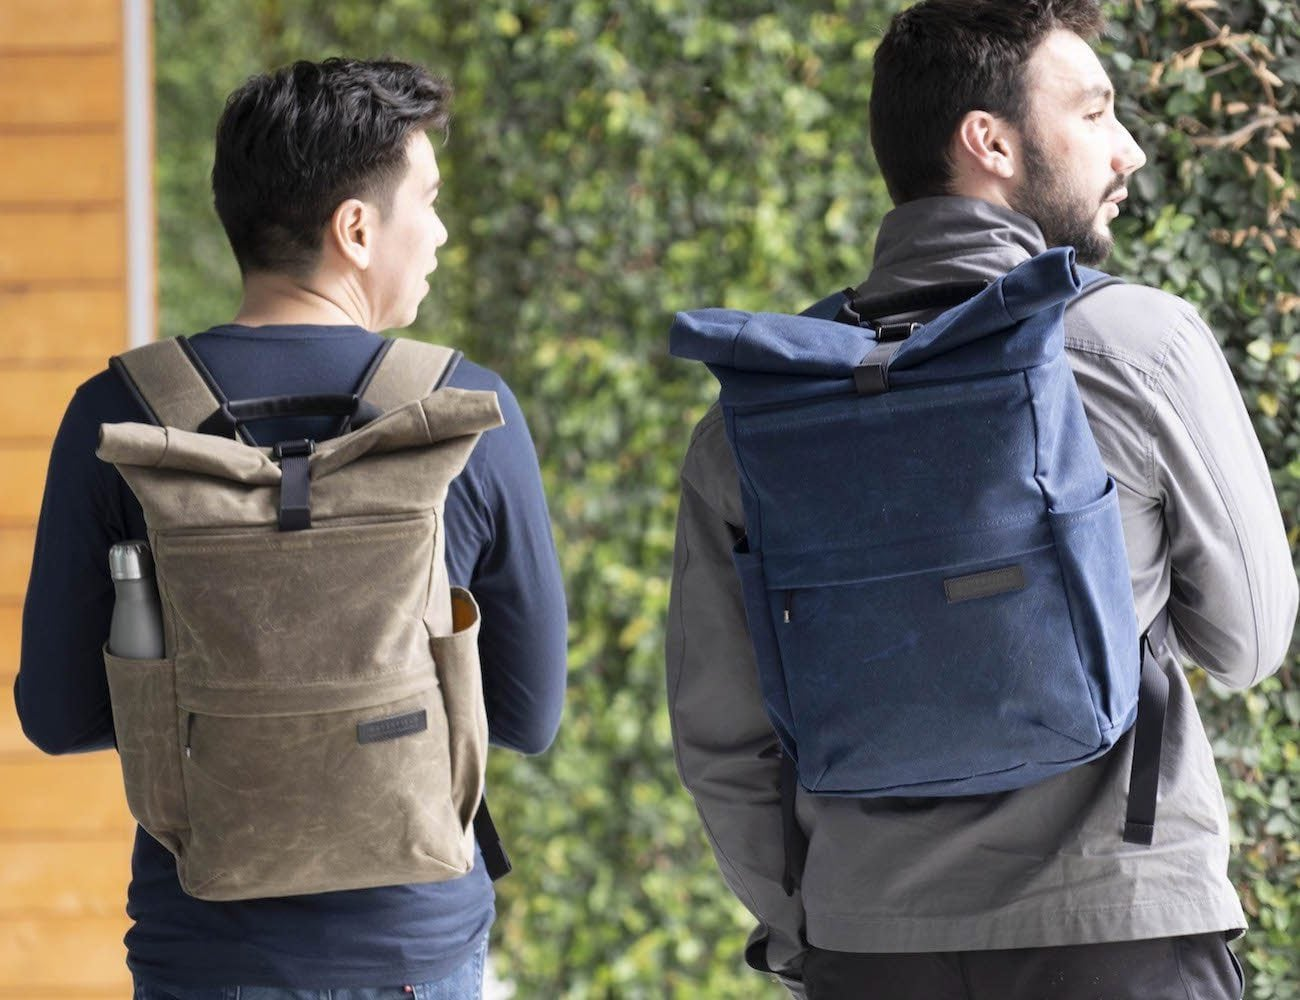 WaterField Tech Rolltop Backpack Everyday Pack carries all your essentials